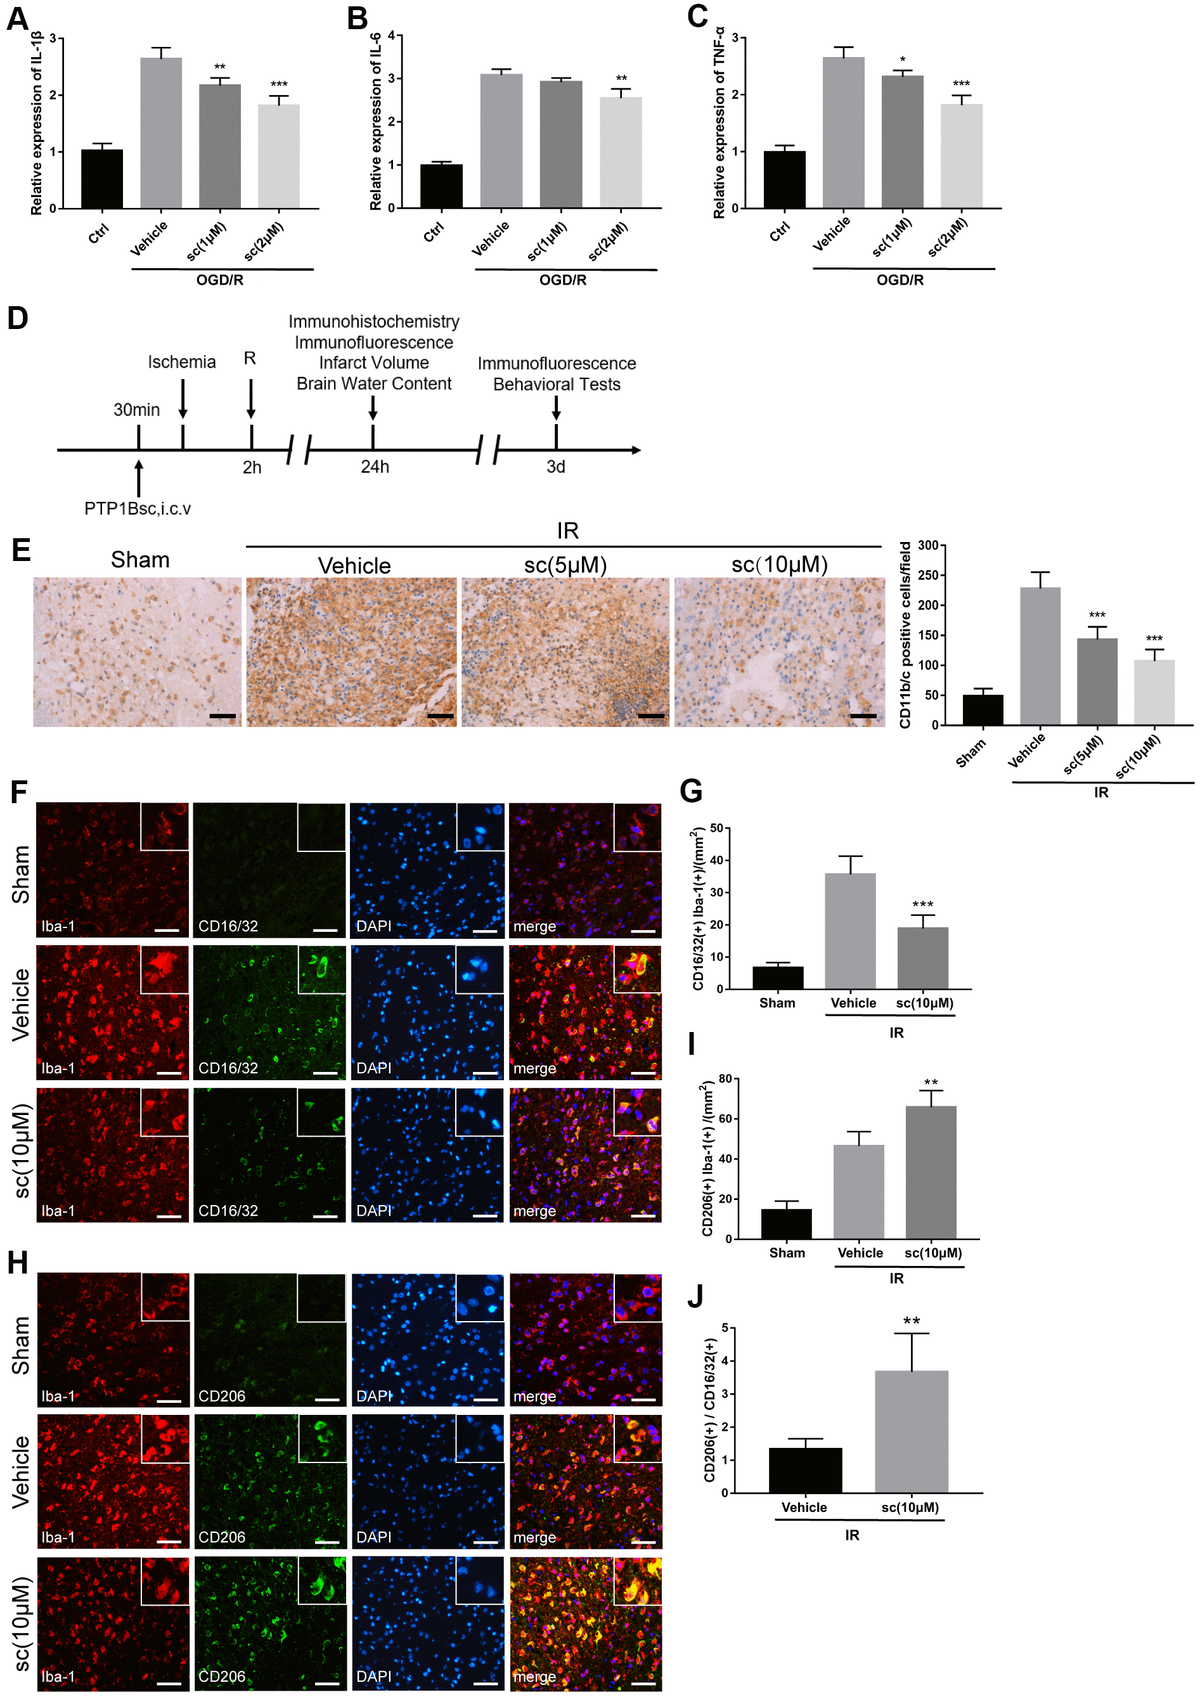 PTP1B inhibitor treatment attenuated microglial activation and promoted M2 microglial polarization after ischemic injury. (A–C) IL-1β, IL-6, and TNF-α mRNA levels after the OGD/R insult were tested by real-time PCR in rat primary microglia. Fold-changes were normalized to β-actin and quantitative results are presented as the mean ± SEM (n = 5 per group). (D) Outline of in vivo experiment to detect the effect of intracerebroventricular administration of PTP1B inhibitor after cerebral IR injury. (E) Immunohistology to detect CD11b/c cell in the ipsilateral cerebral cortex, and quantitative analysis of CD11b/c-positive cell number are presented as the mean ± SEM (n = 5 per group). Scale bar = 50 μm. (F, G) Double immunofluorescence to detect CD16/32(+) Iba-1(+) cell in ipsilateral cerebral cortex 72 h after IR injury, and quantitative analysis of CD16/32(+) Iba-1(+) cell density (presented as the mean ± SEM, n = 6 per group). Scale bar = 50 μm. (H, I) Double immunofluorescence to detect CD206(+) Iba-1(+) cells in the ipsilateral cerebral cortex 72 h after IR injury, and quantitative analysis of CD206(+) Iba-1(+) cell density (presented as the mean ± SEM, n = 6 per group). Scale bar = 50 μm. (J) Quantitative analysis of the ratio of Iba1(+)/CD206(+) microglia to Iba-1(+)/CD16/32(+) microglia; the results are presented as the mean ± SEM. *p p p